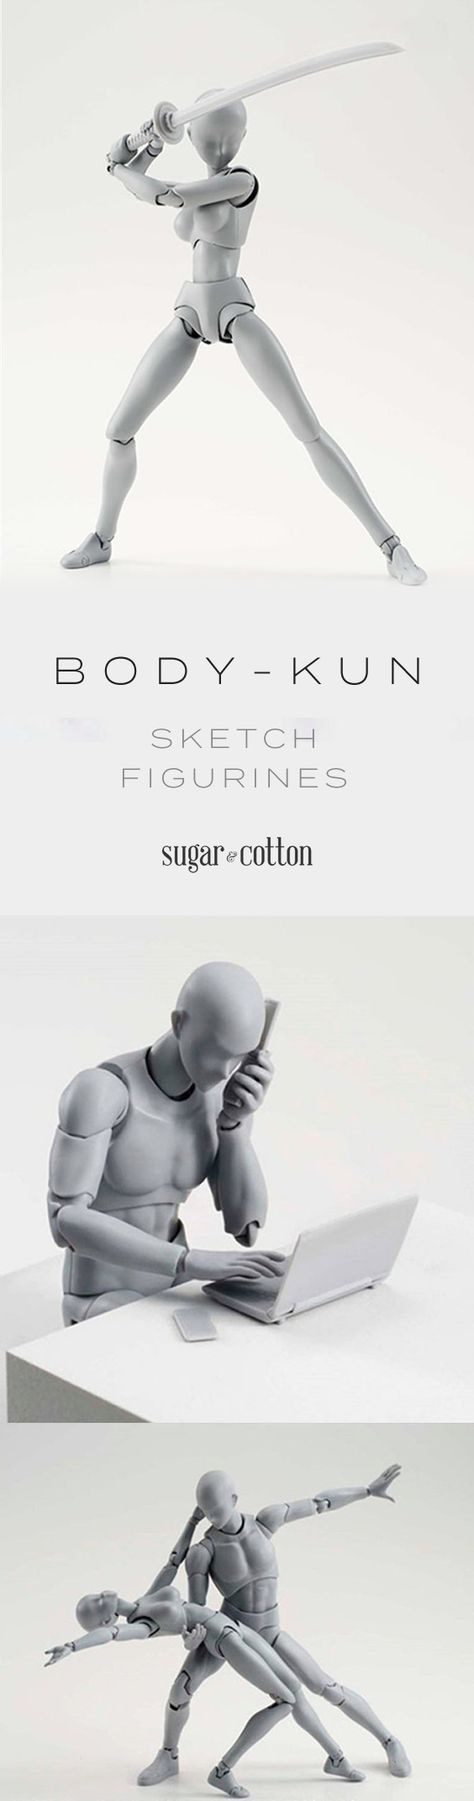 Body-Kun - Posable Figurines for Artists - ★★★★★ (5/5)